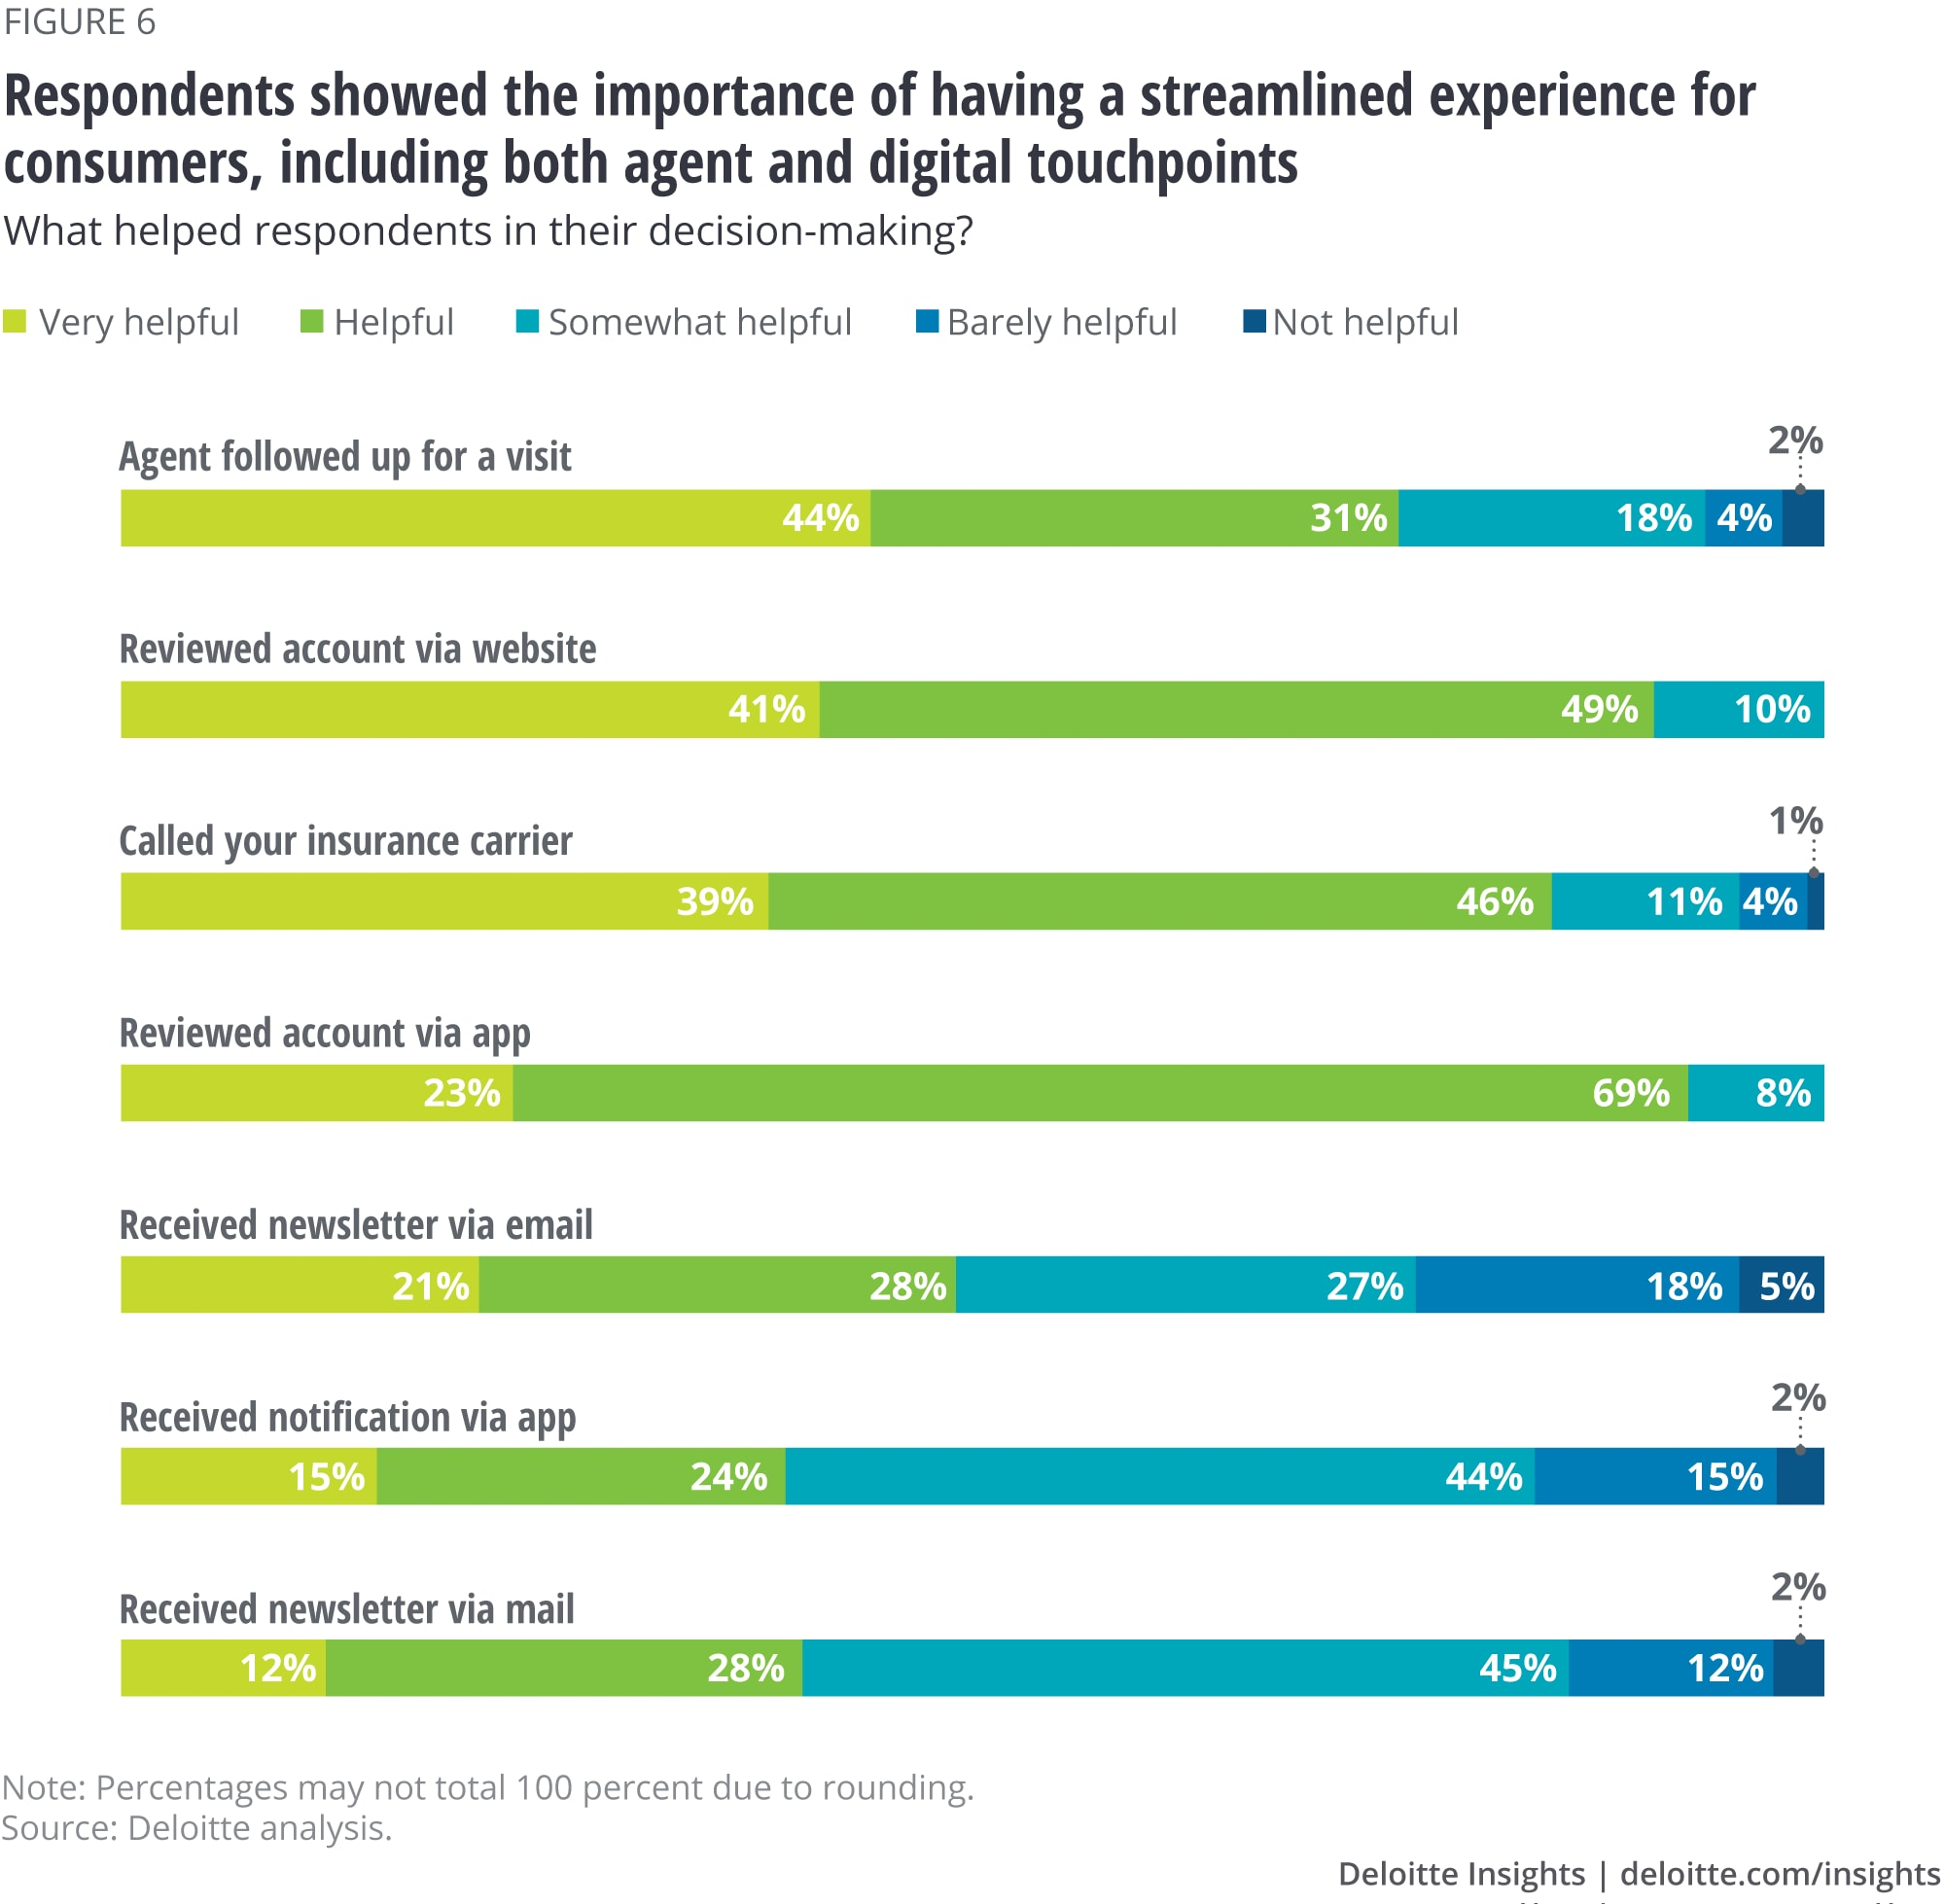 Respondents showed the importance of having a streamlined experience for consumers, including both agent and digital touchpoints